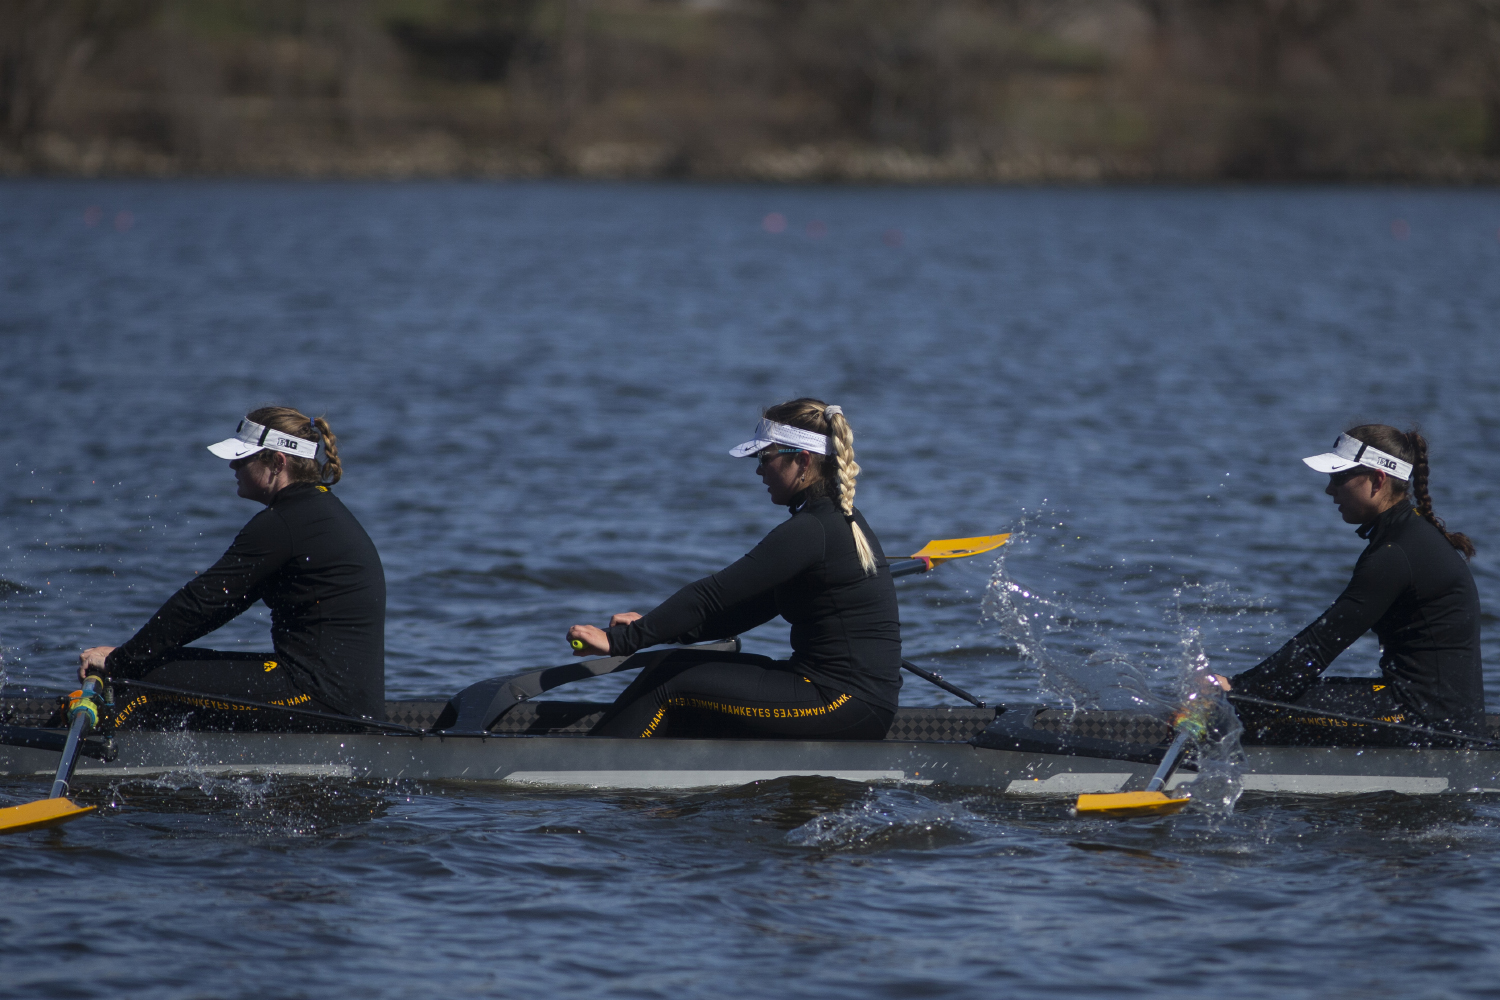 Iowa's second varsity crew rows back after losing to Wisconsin by 6.07 seconds in the first session of a women's rowing meet on Lake MacBride on Saturday April 13, 2019. Iowa won 3 out of 12 races with the varsity 8 crew winning both races for the day.